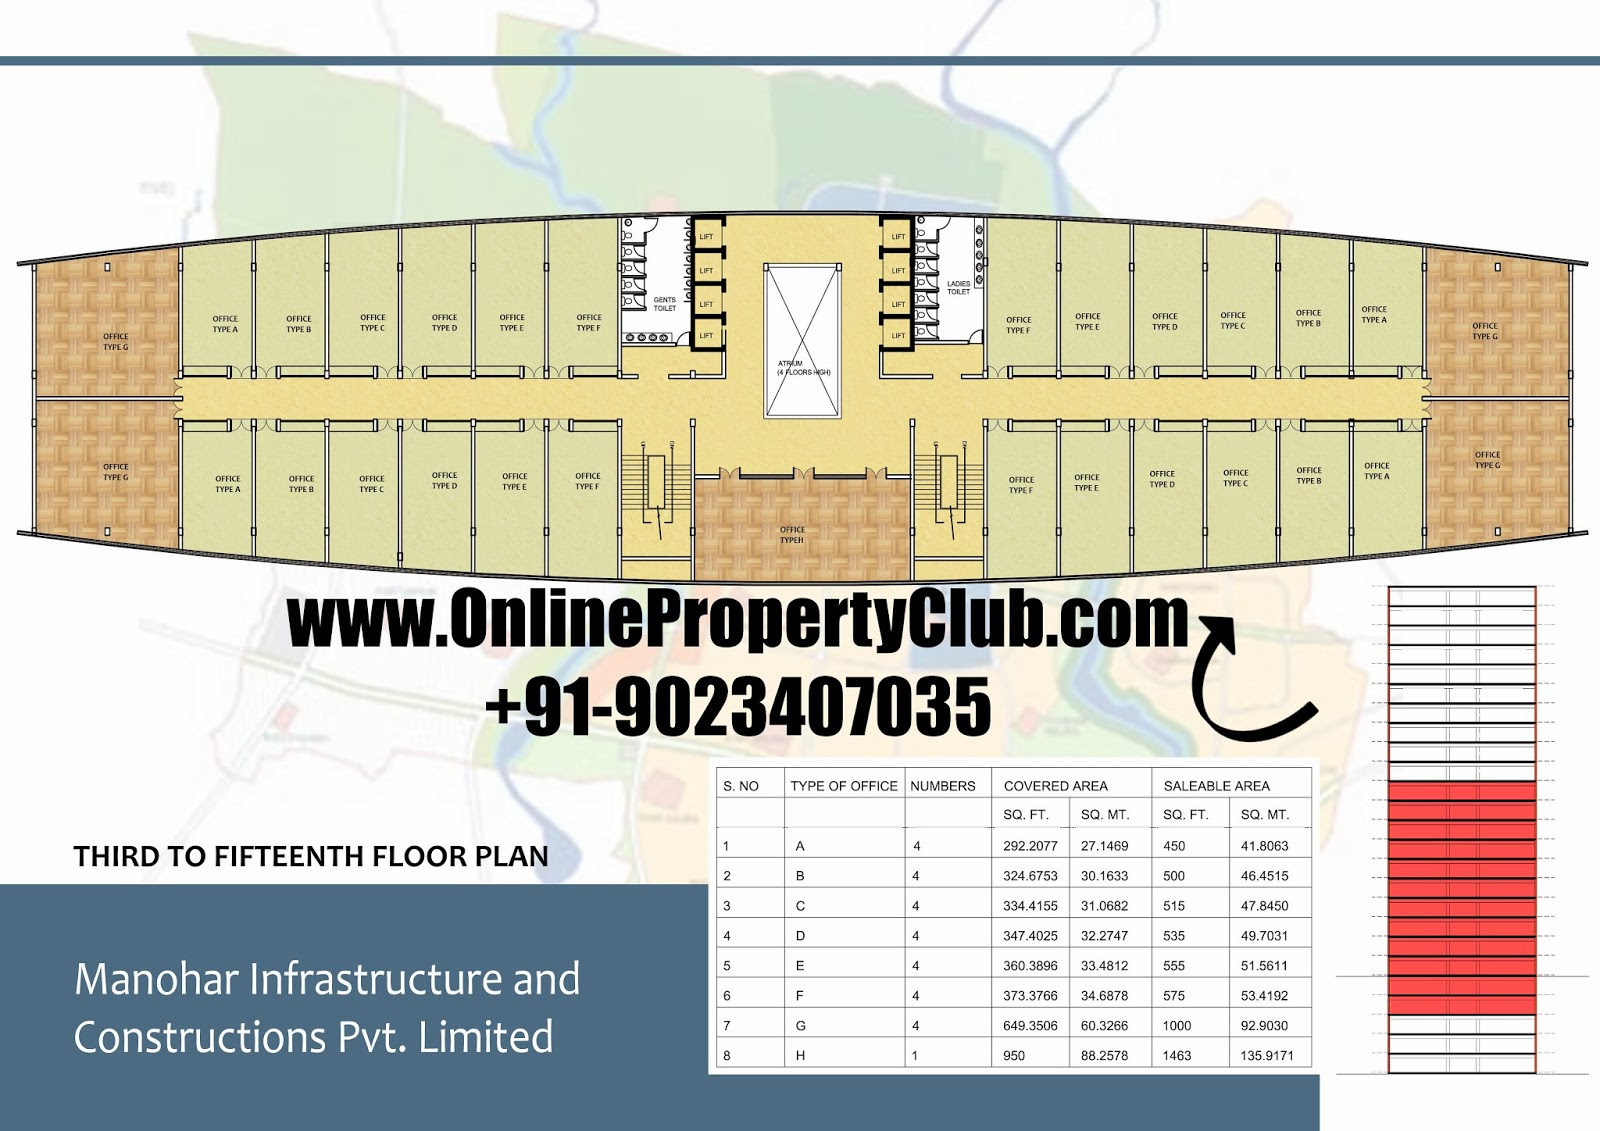 Palm Square Mullanpur Office Space Manohar Singh and Company